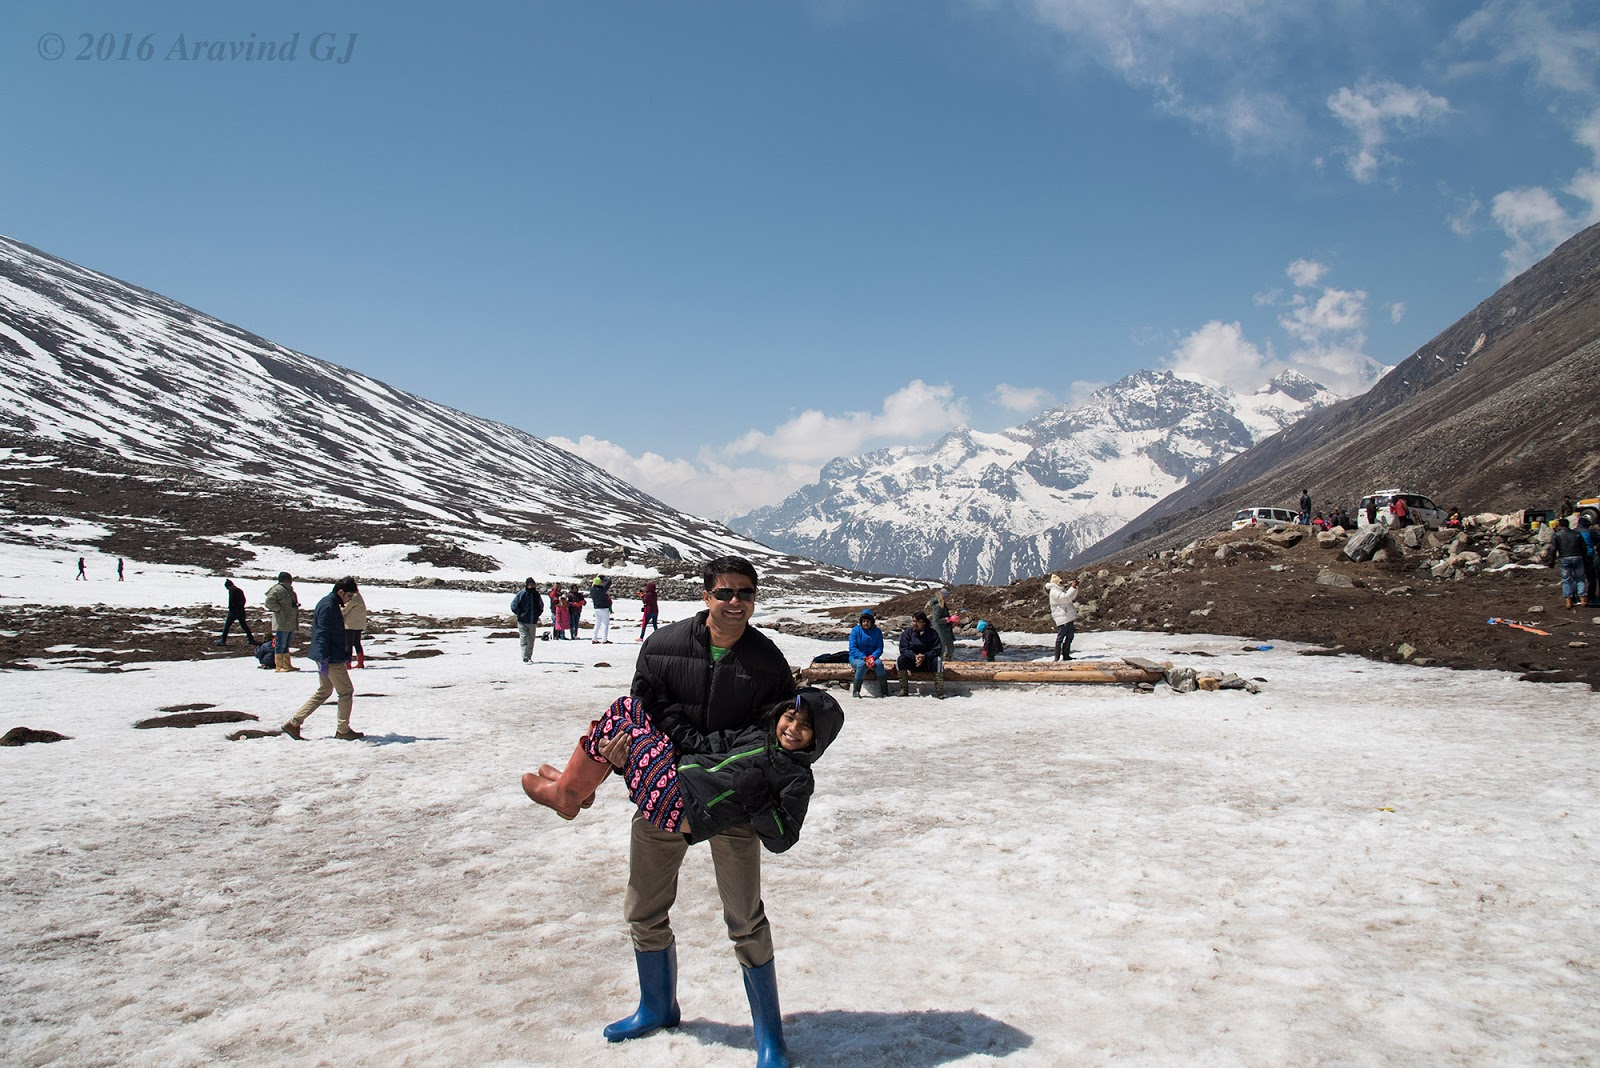 Zero Point Yumthang Valley, Treks and travels: Yumthang valley in North Sikkim